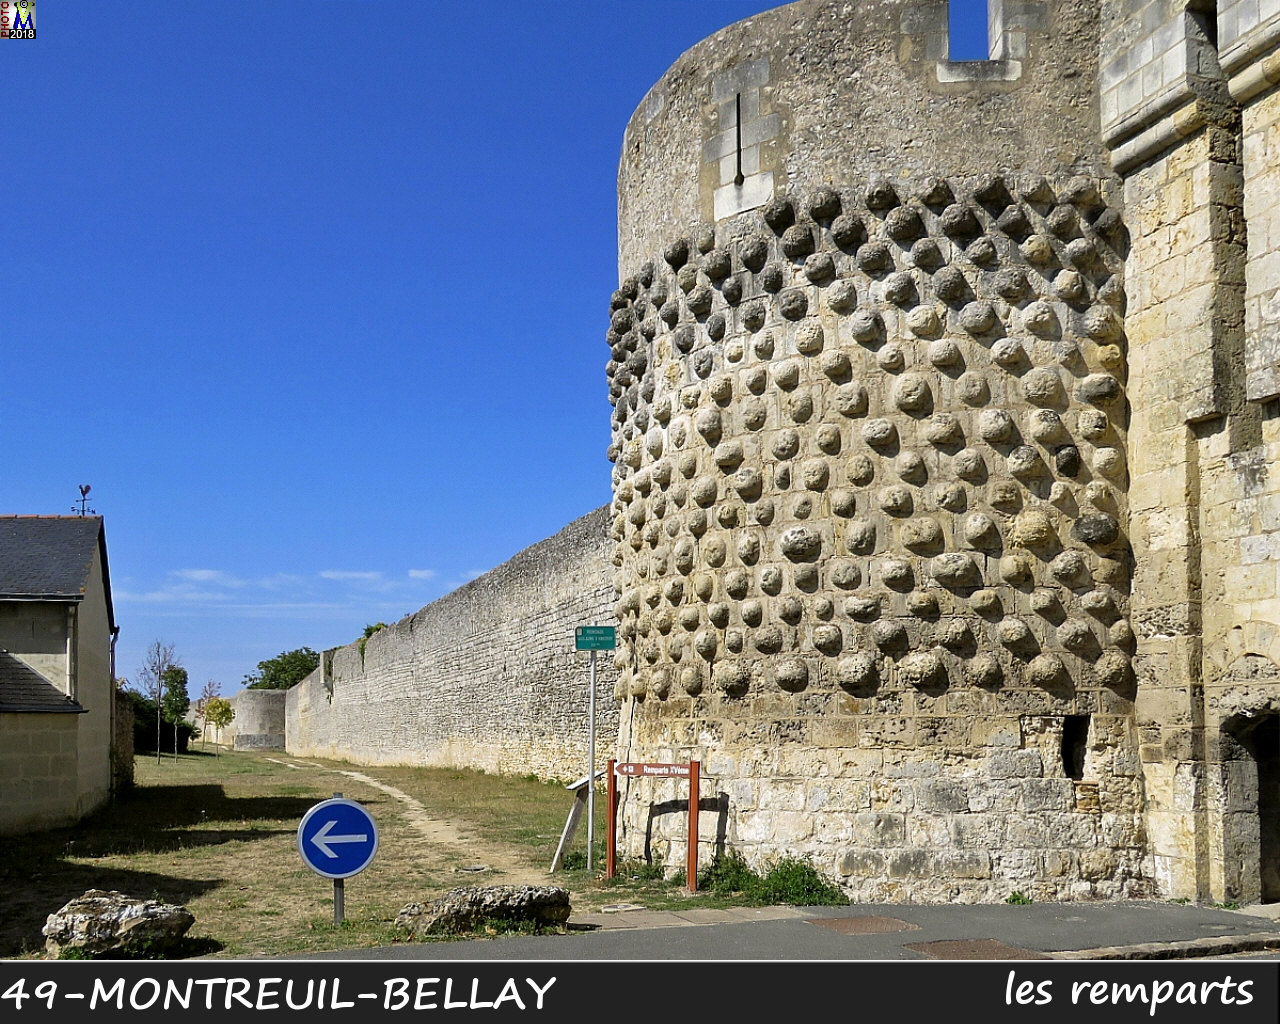 49MONTREUIL-BELLAY_remparts_1000.jpg